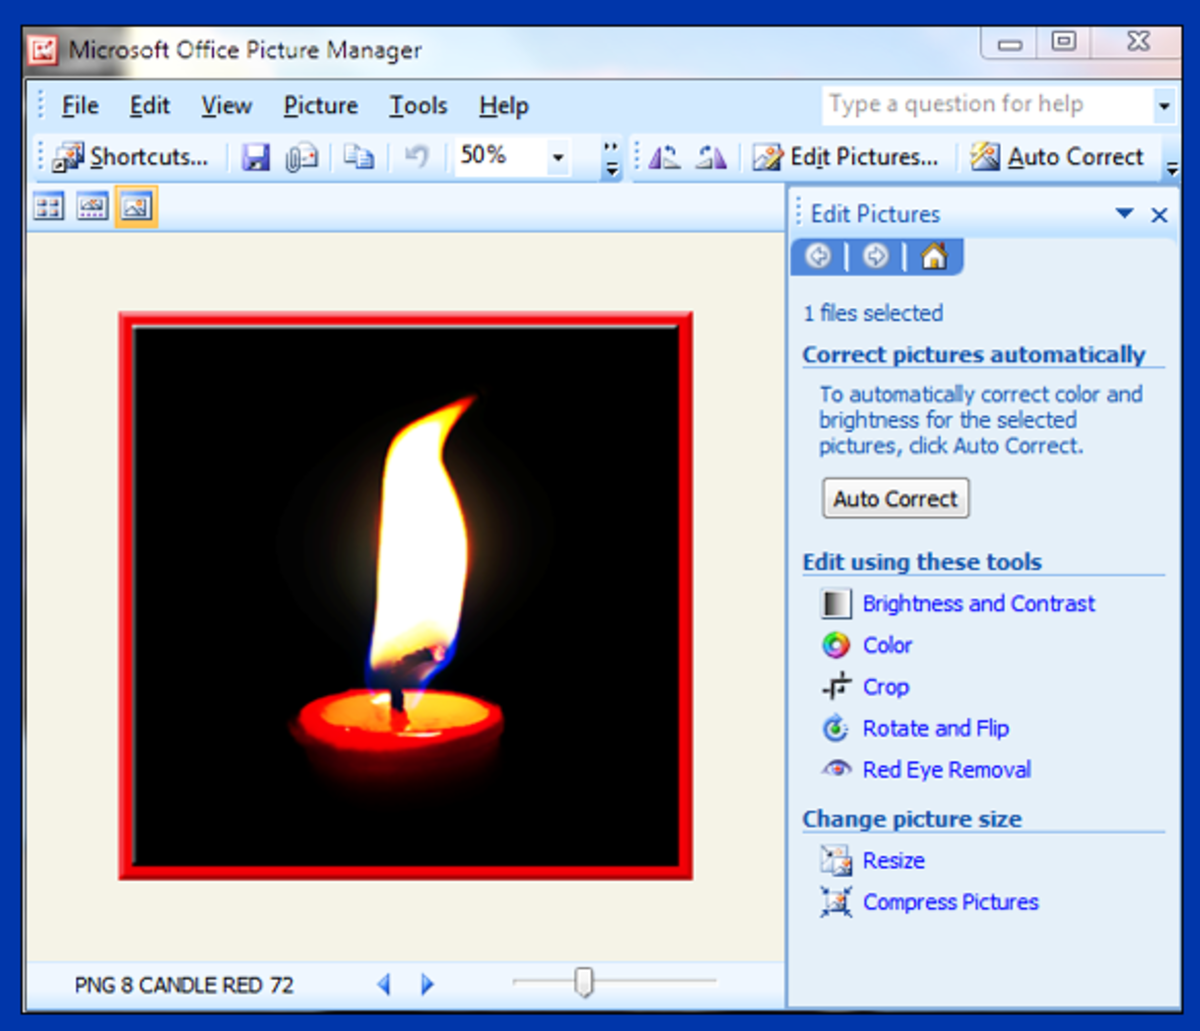 Screenshot 6. The Microsoft Picture Manager edit panel opens on the right.